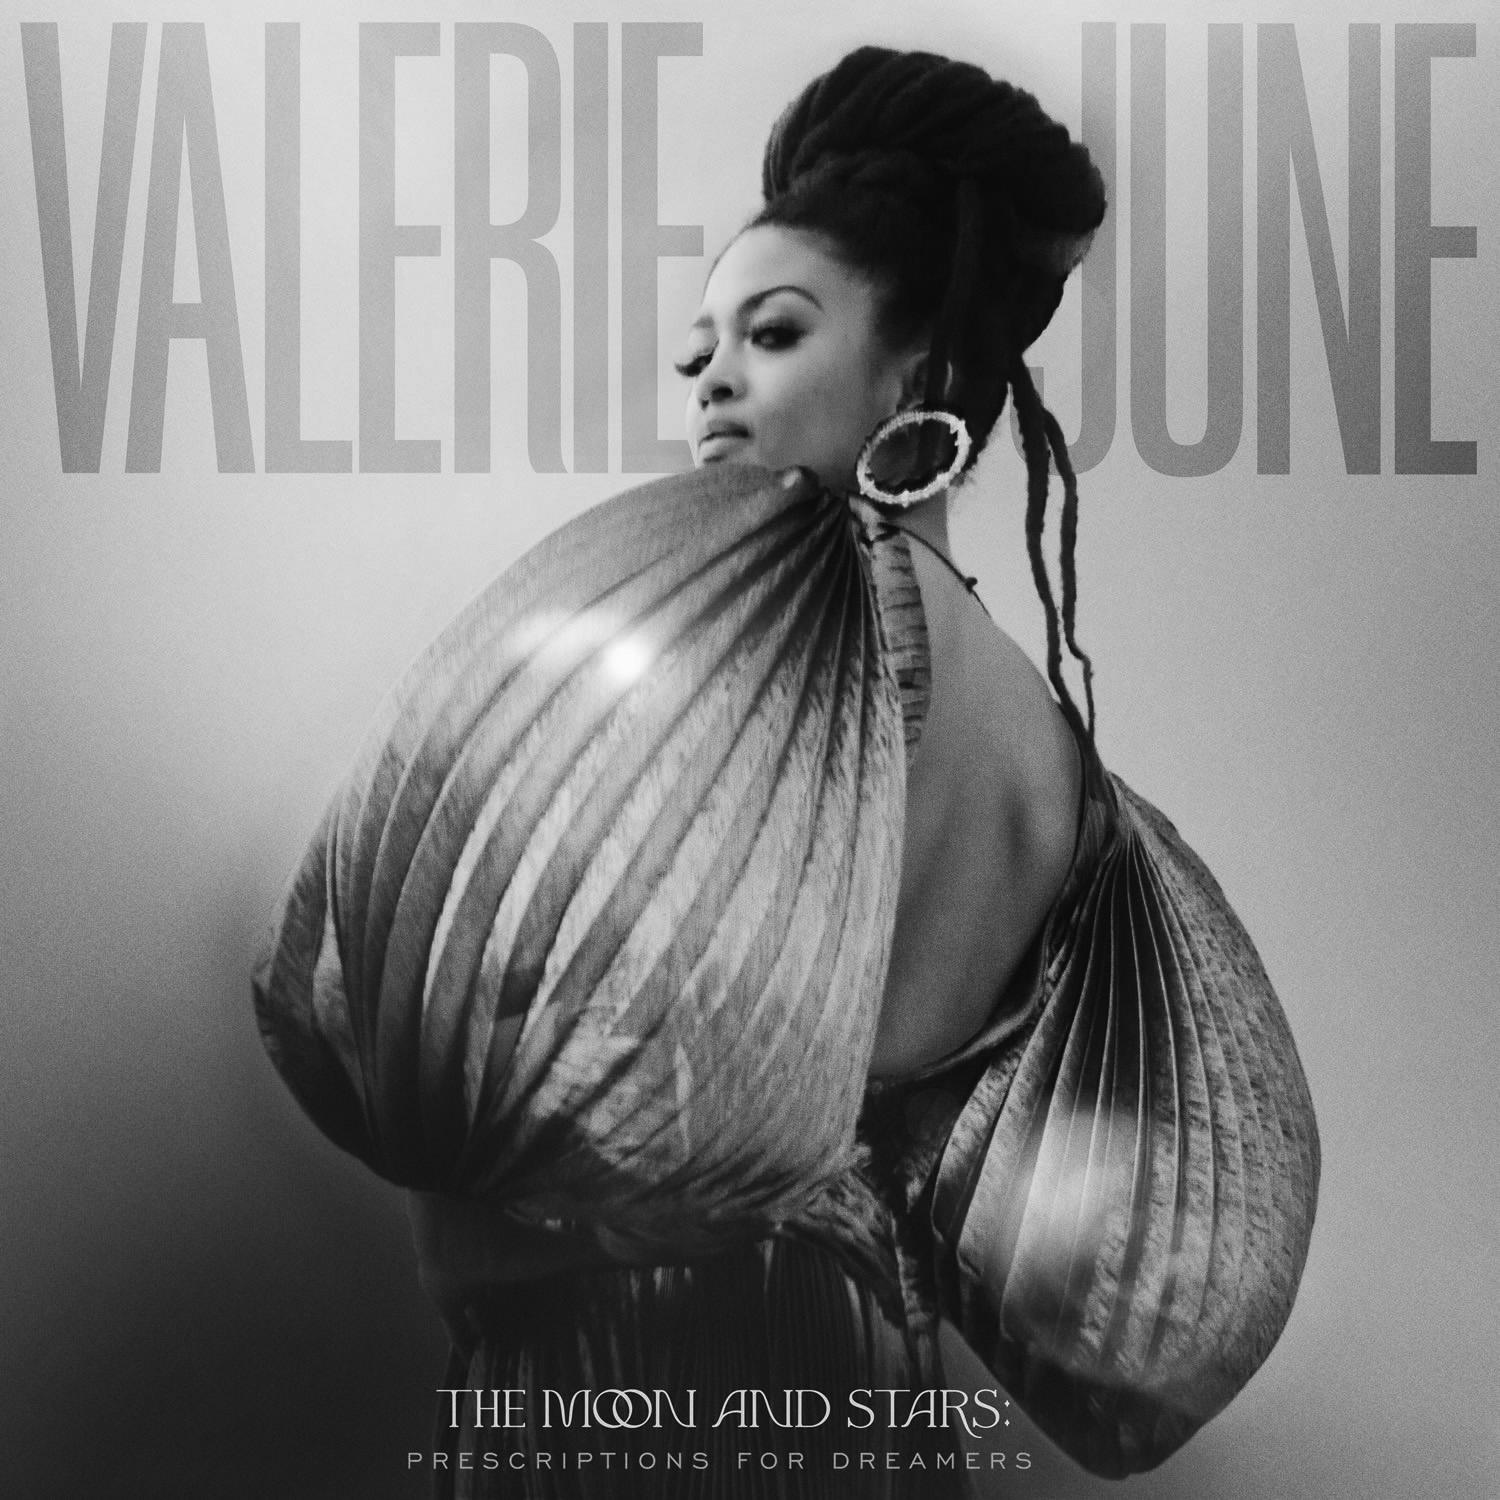 """Album cover for The Moon and the Stars: Prescriptions for Dreamers by Valerie June. It's a black and white photo of Valerie June in a dress with ballooning sleeves facing away from the camera and looking over her shoulder. She's dark-skinned and has her hair tied up on top of her head. She's wearing large hoop earrings and her gaze is cast downward, toward the camera. At the top reads """"Valerie June"""" in big letters, and in smaller letters at the bottom reads """"The Moon and the Stars: Prescriptions for Dreamers."""""""